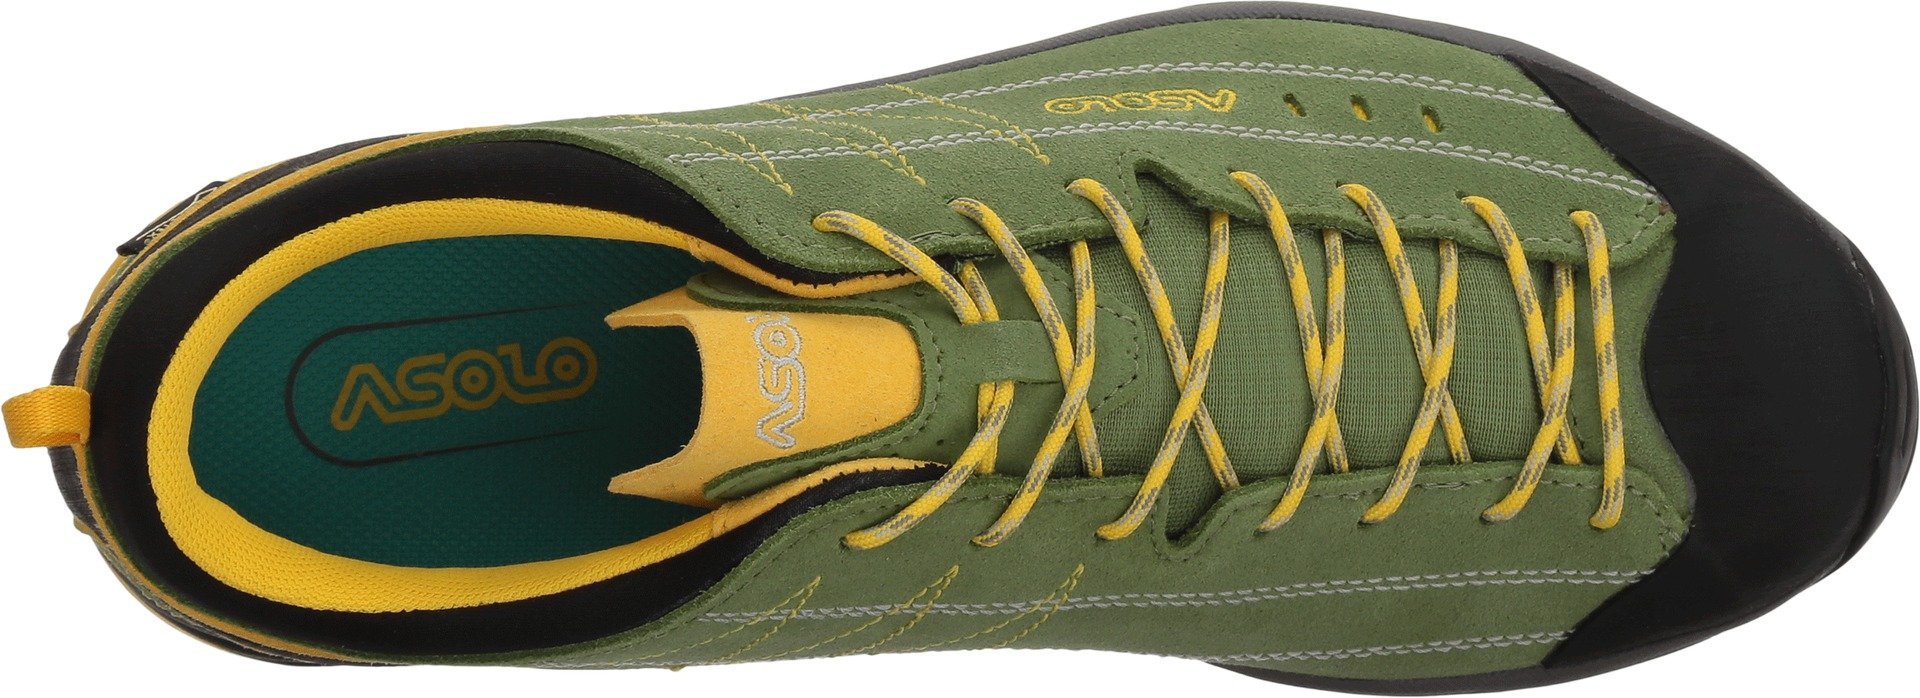 Asolo Women's Nucleon GV English Ivy/Yellow 6 B US by Asolo (Image #2)